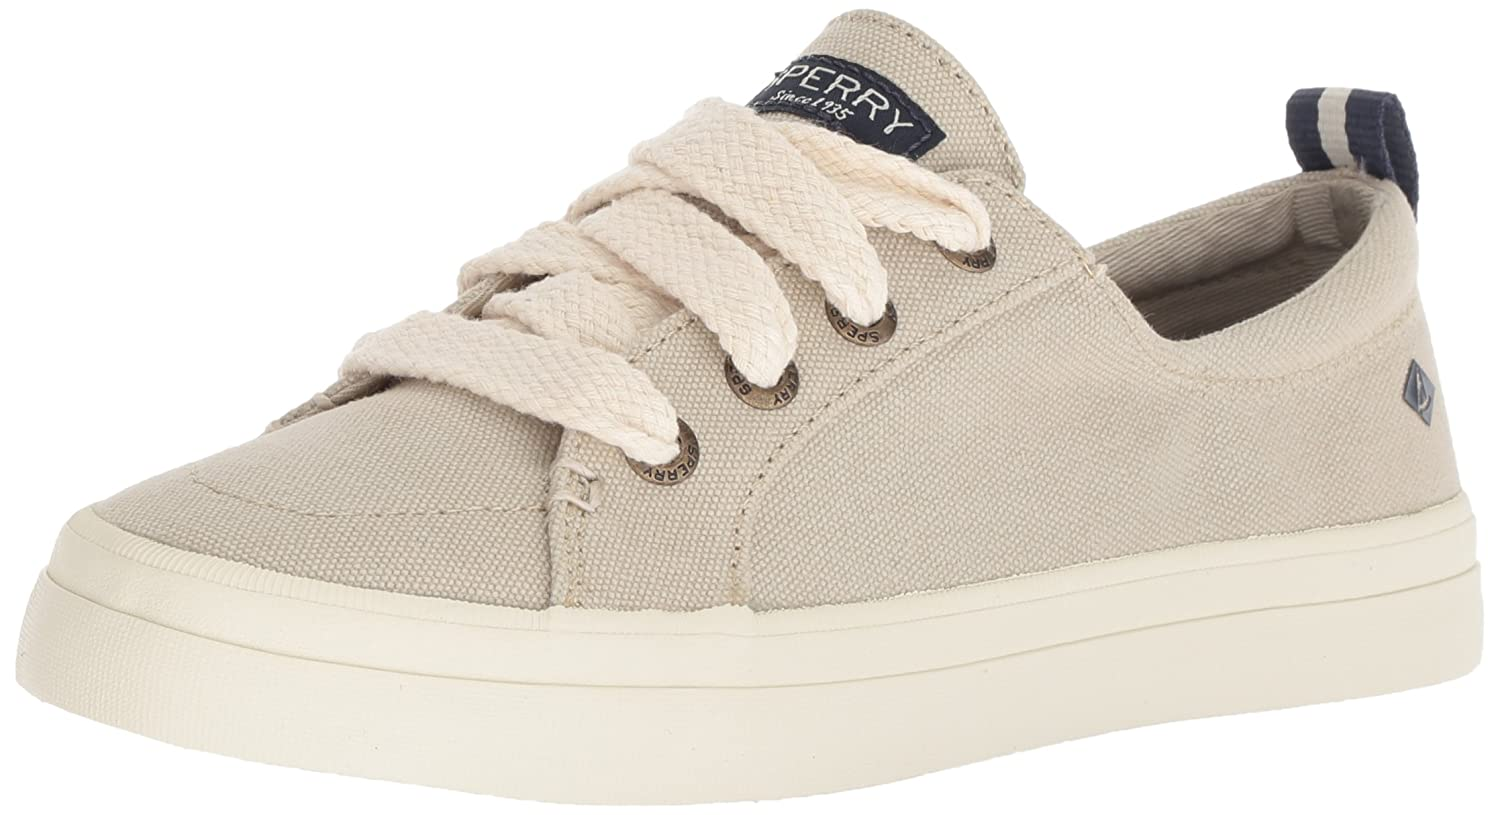 Sperry Top-Sider Women's Crest Vibe Chubby Lace Sneaker B078SGH6MT 9.5 M US|Ivory